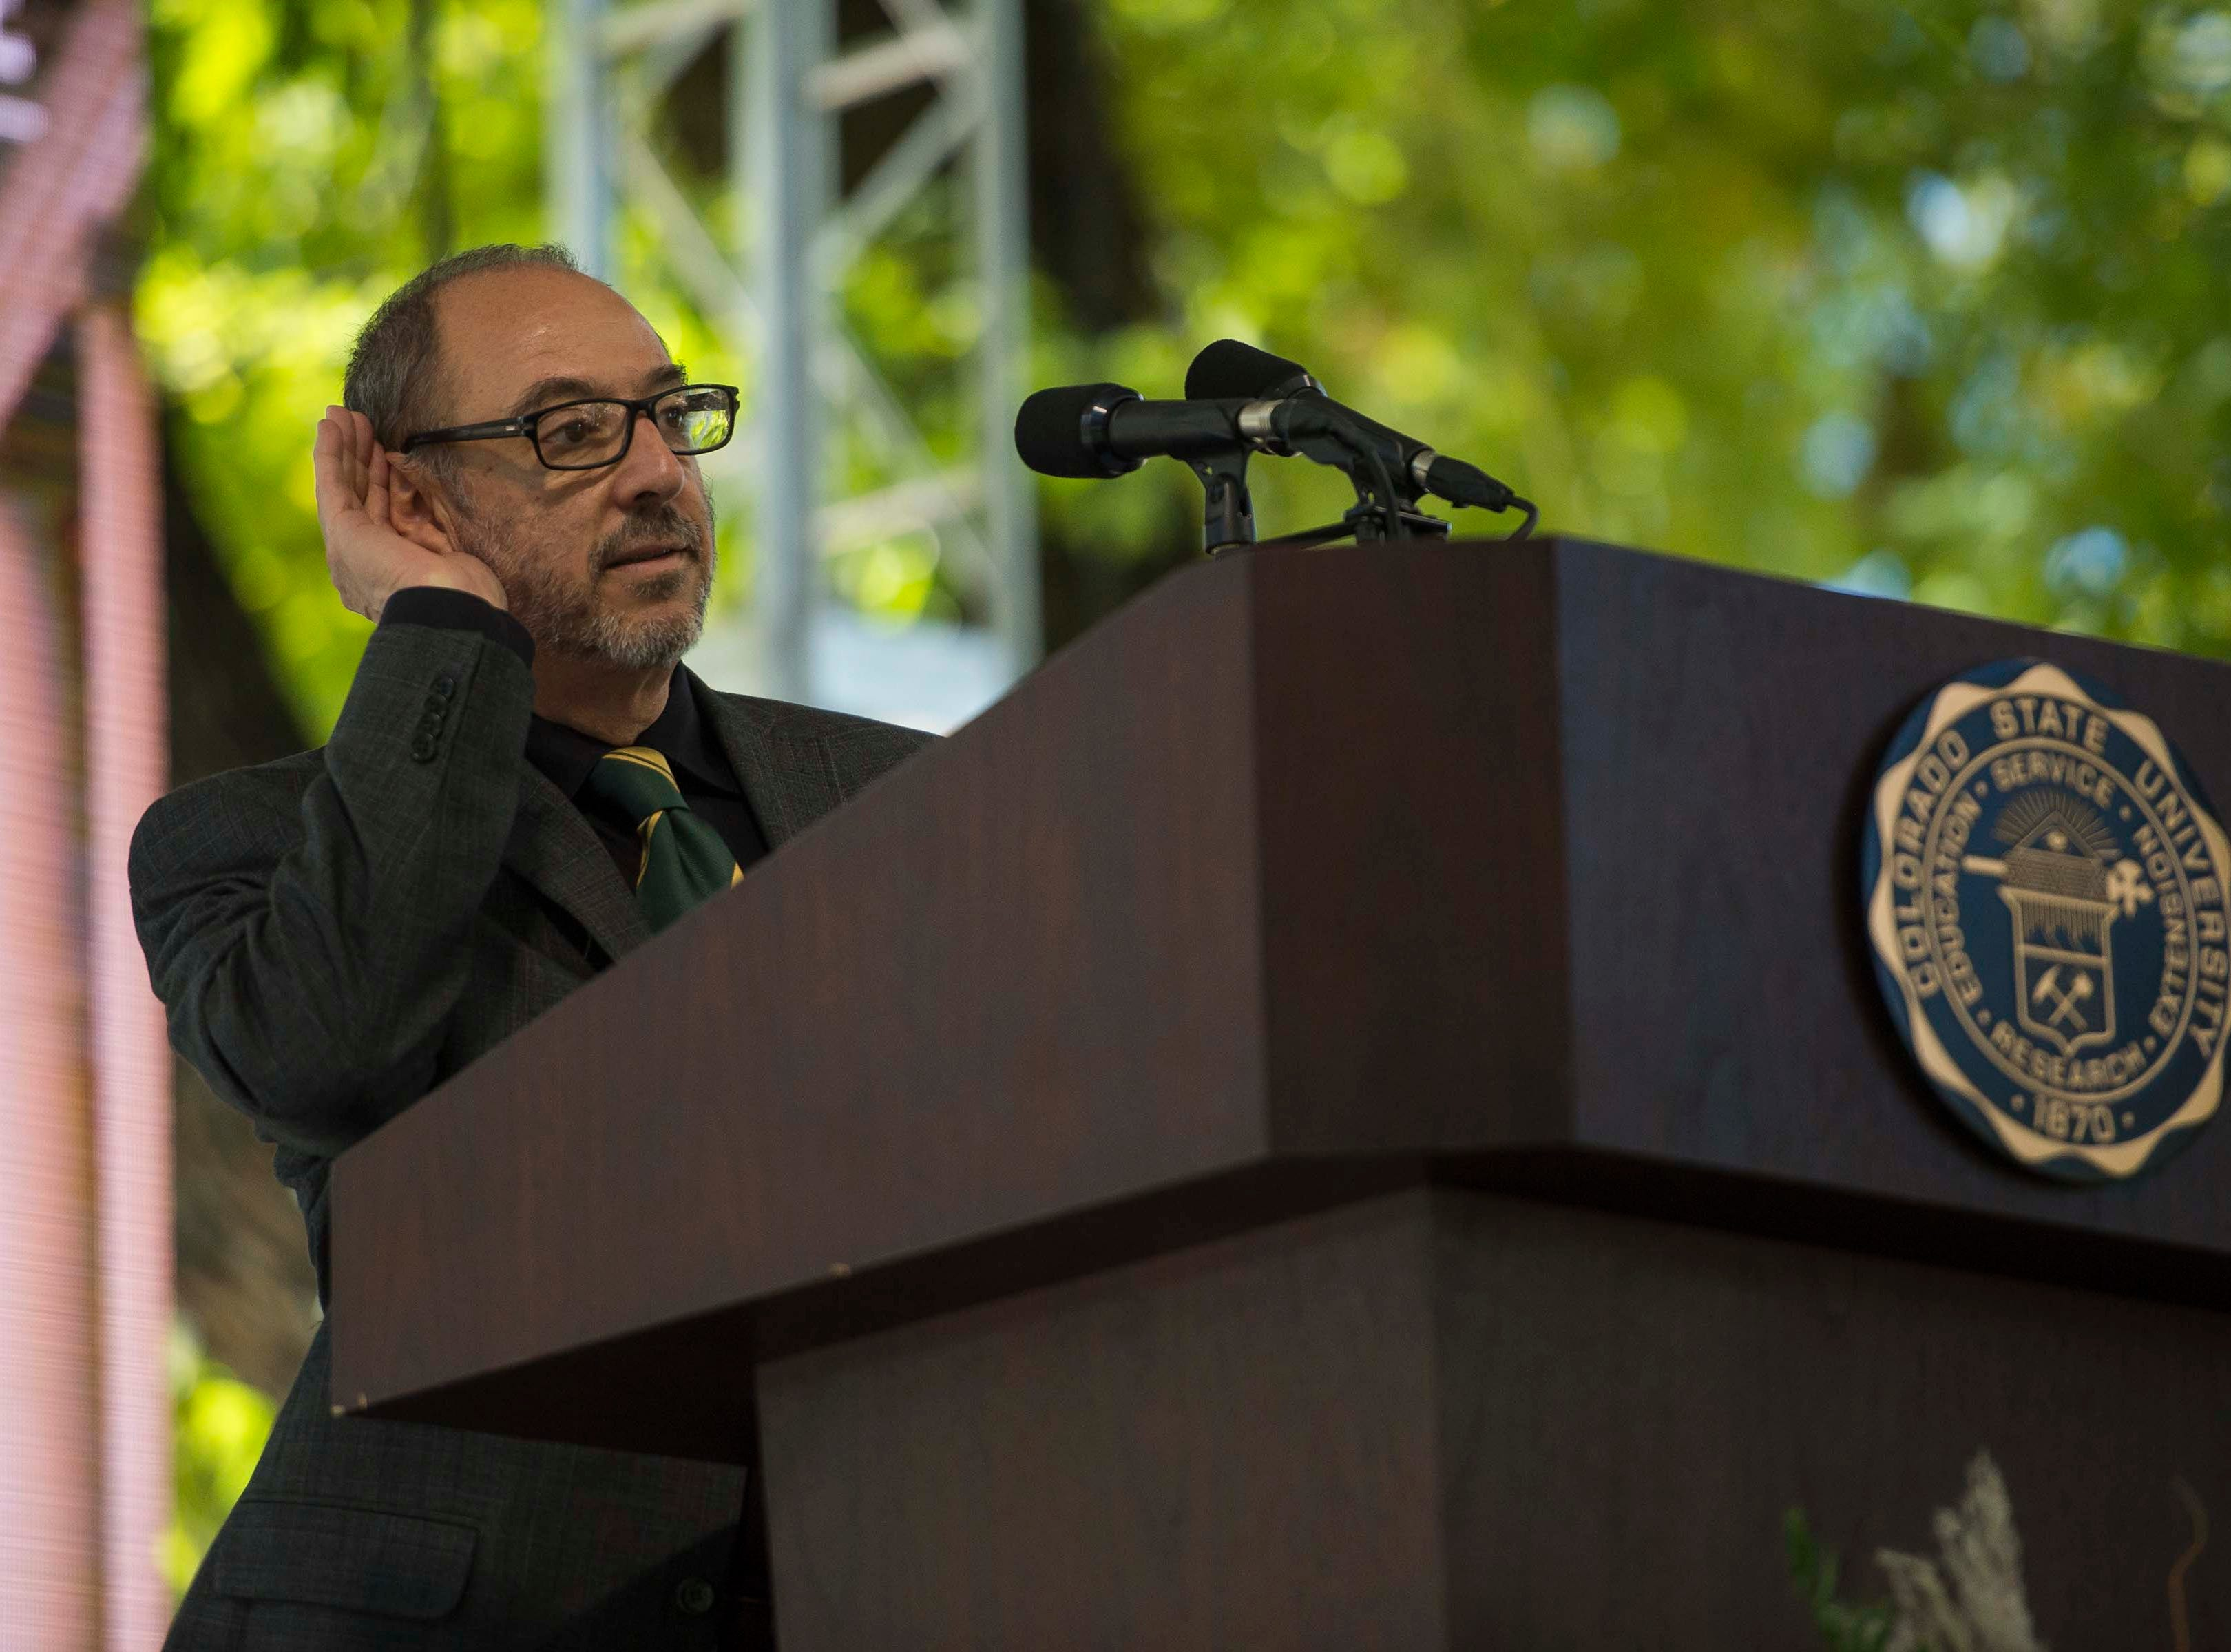 CSU Provost and Executive Vice President Rick Miranda speaks to an audience on Wednesday, Oct. 3, 2018, during the 2018 fall address at the Colorado State University campus in Fort Collins, Colo.